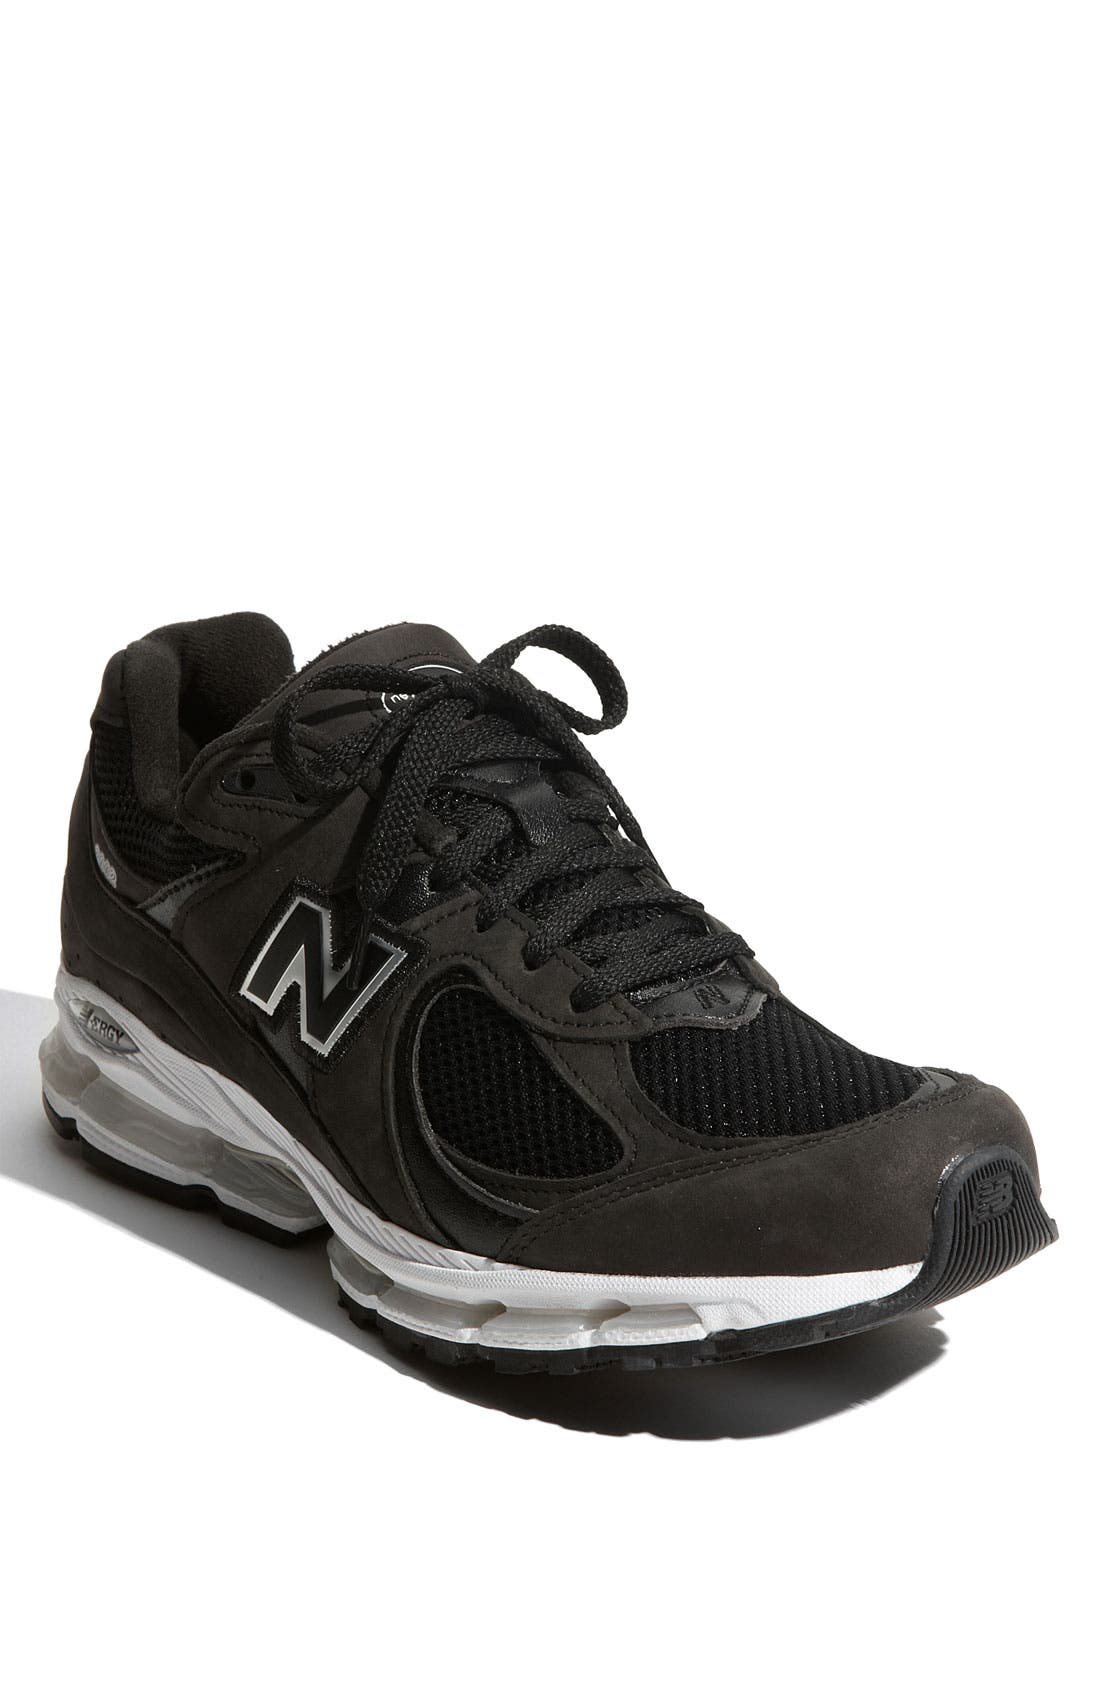 NEW BALANCE '2002' Running Shoe, Main, color, 001